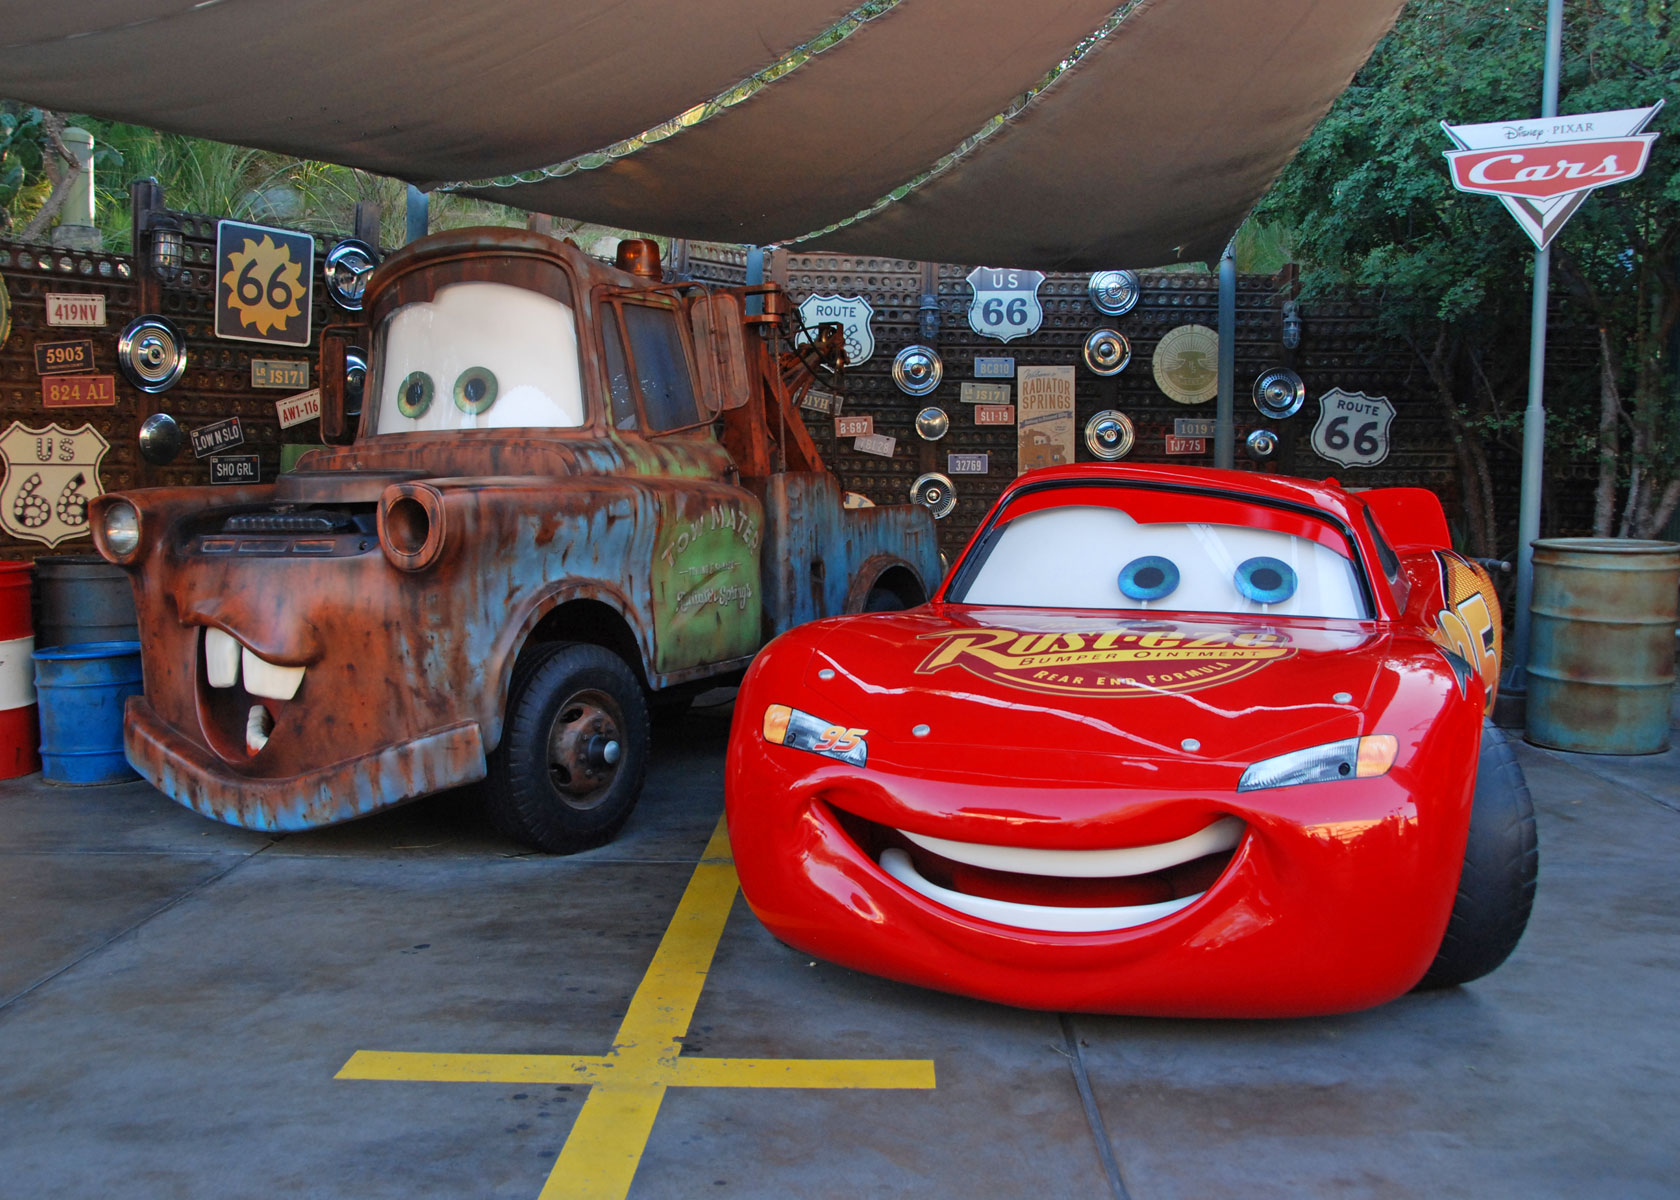 California Adventure - Lightning McQueen and Mater photo